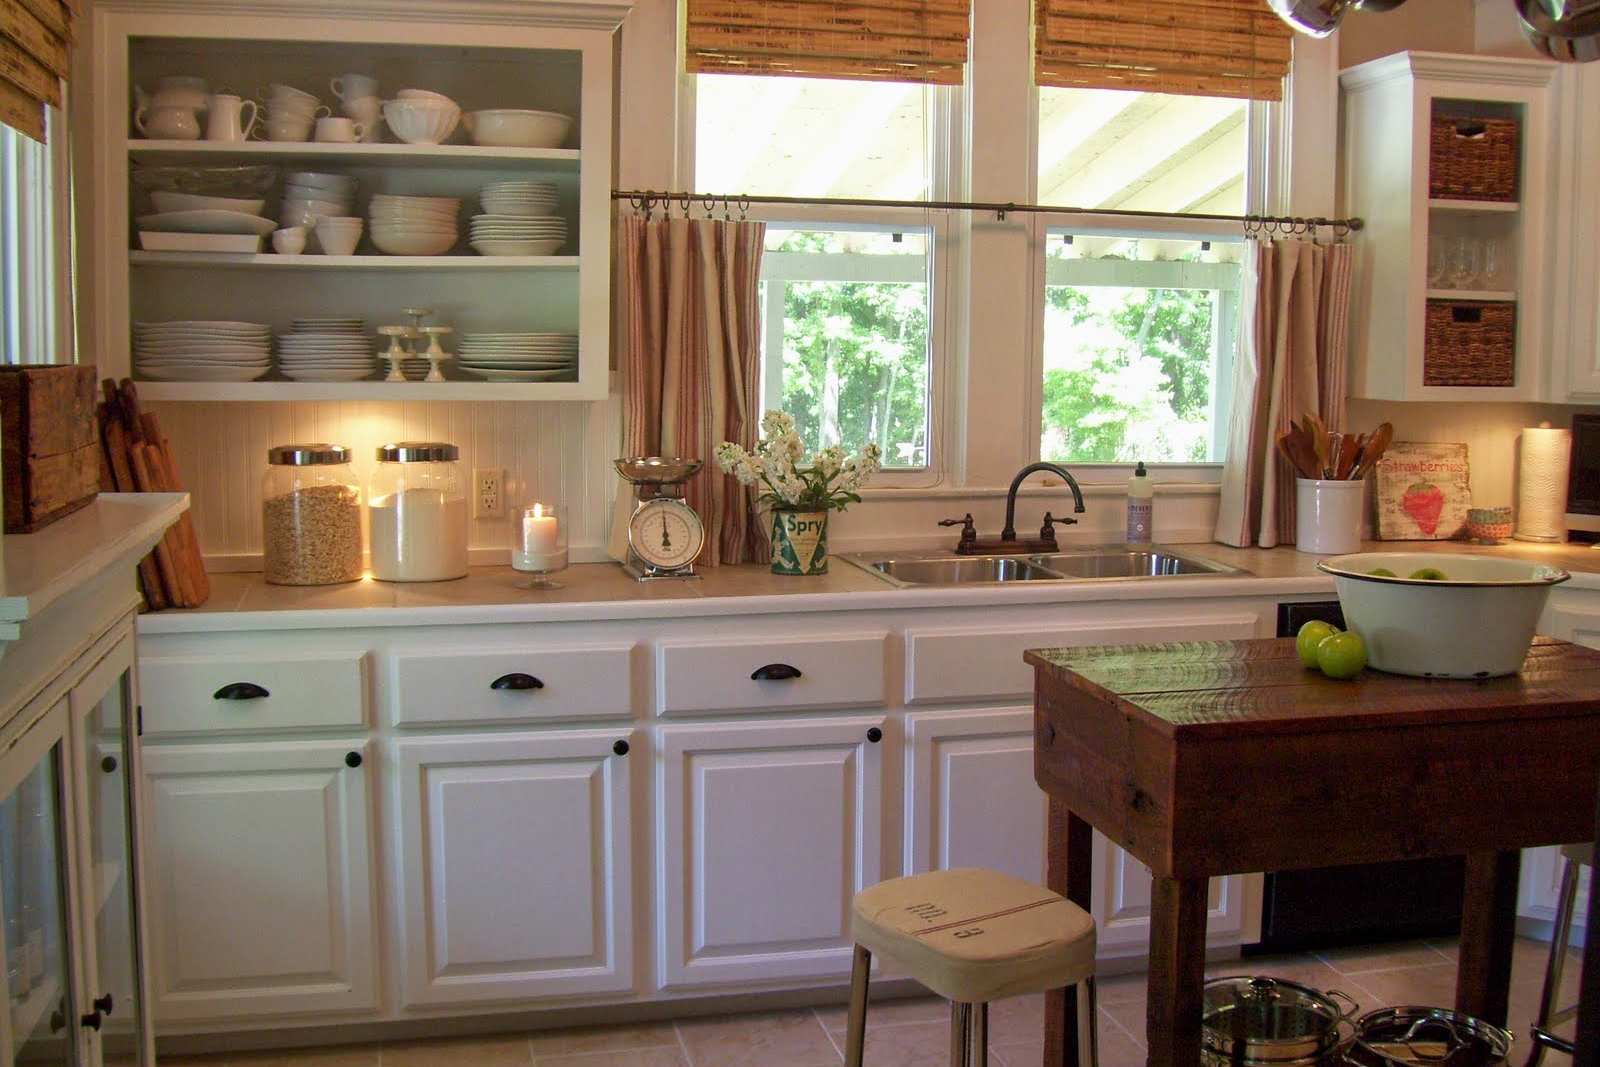 Beautiful Kitchen Remodels Remodelling remodeling a kitchen | do it yourself kitchen remodel